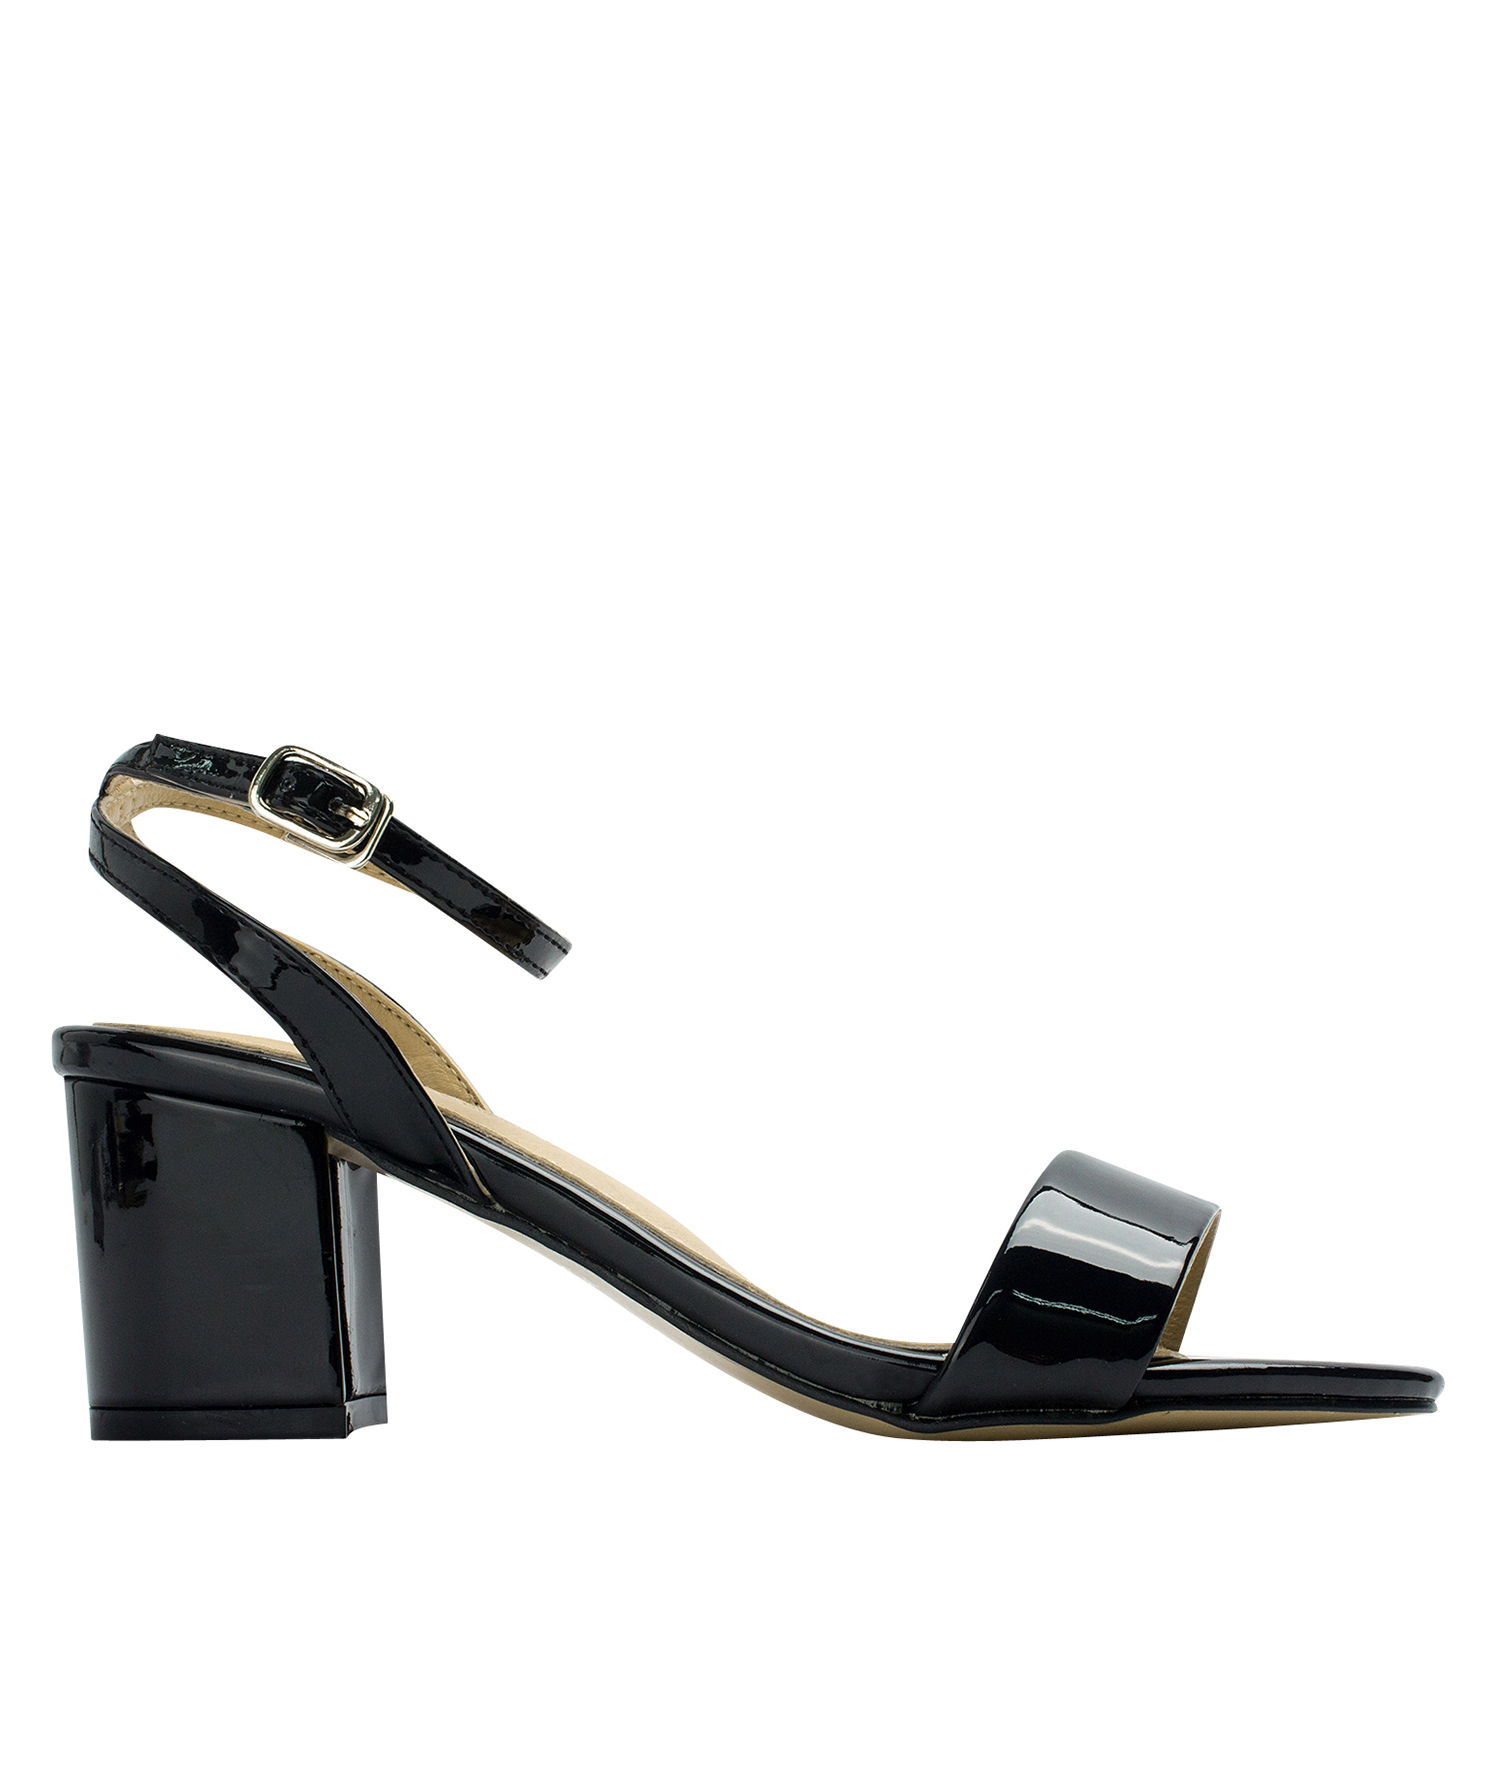 AnnaKastle Womens Patent Ankle Strap Block Heel Sandals Black